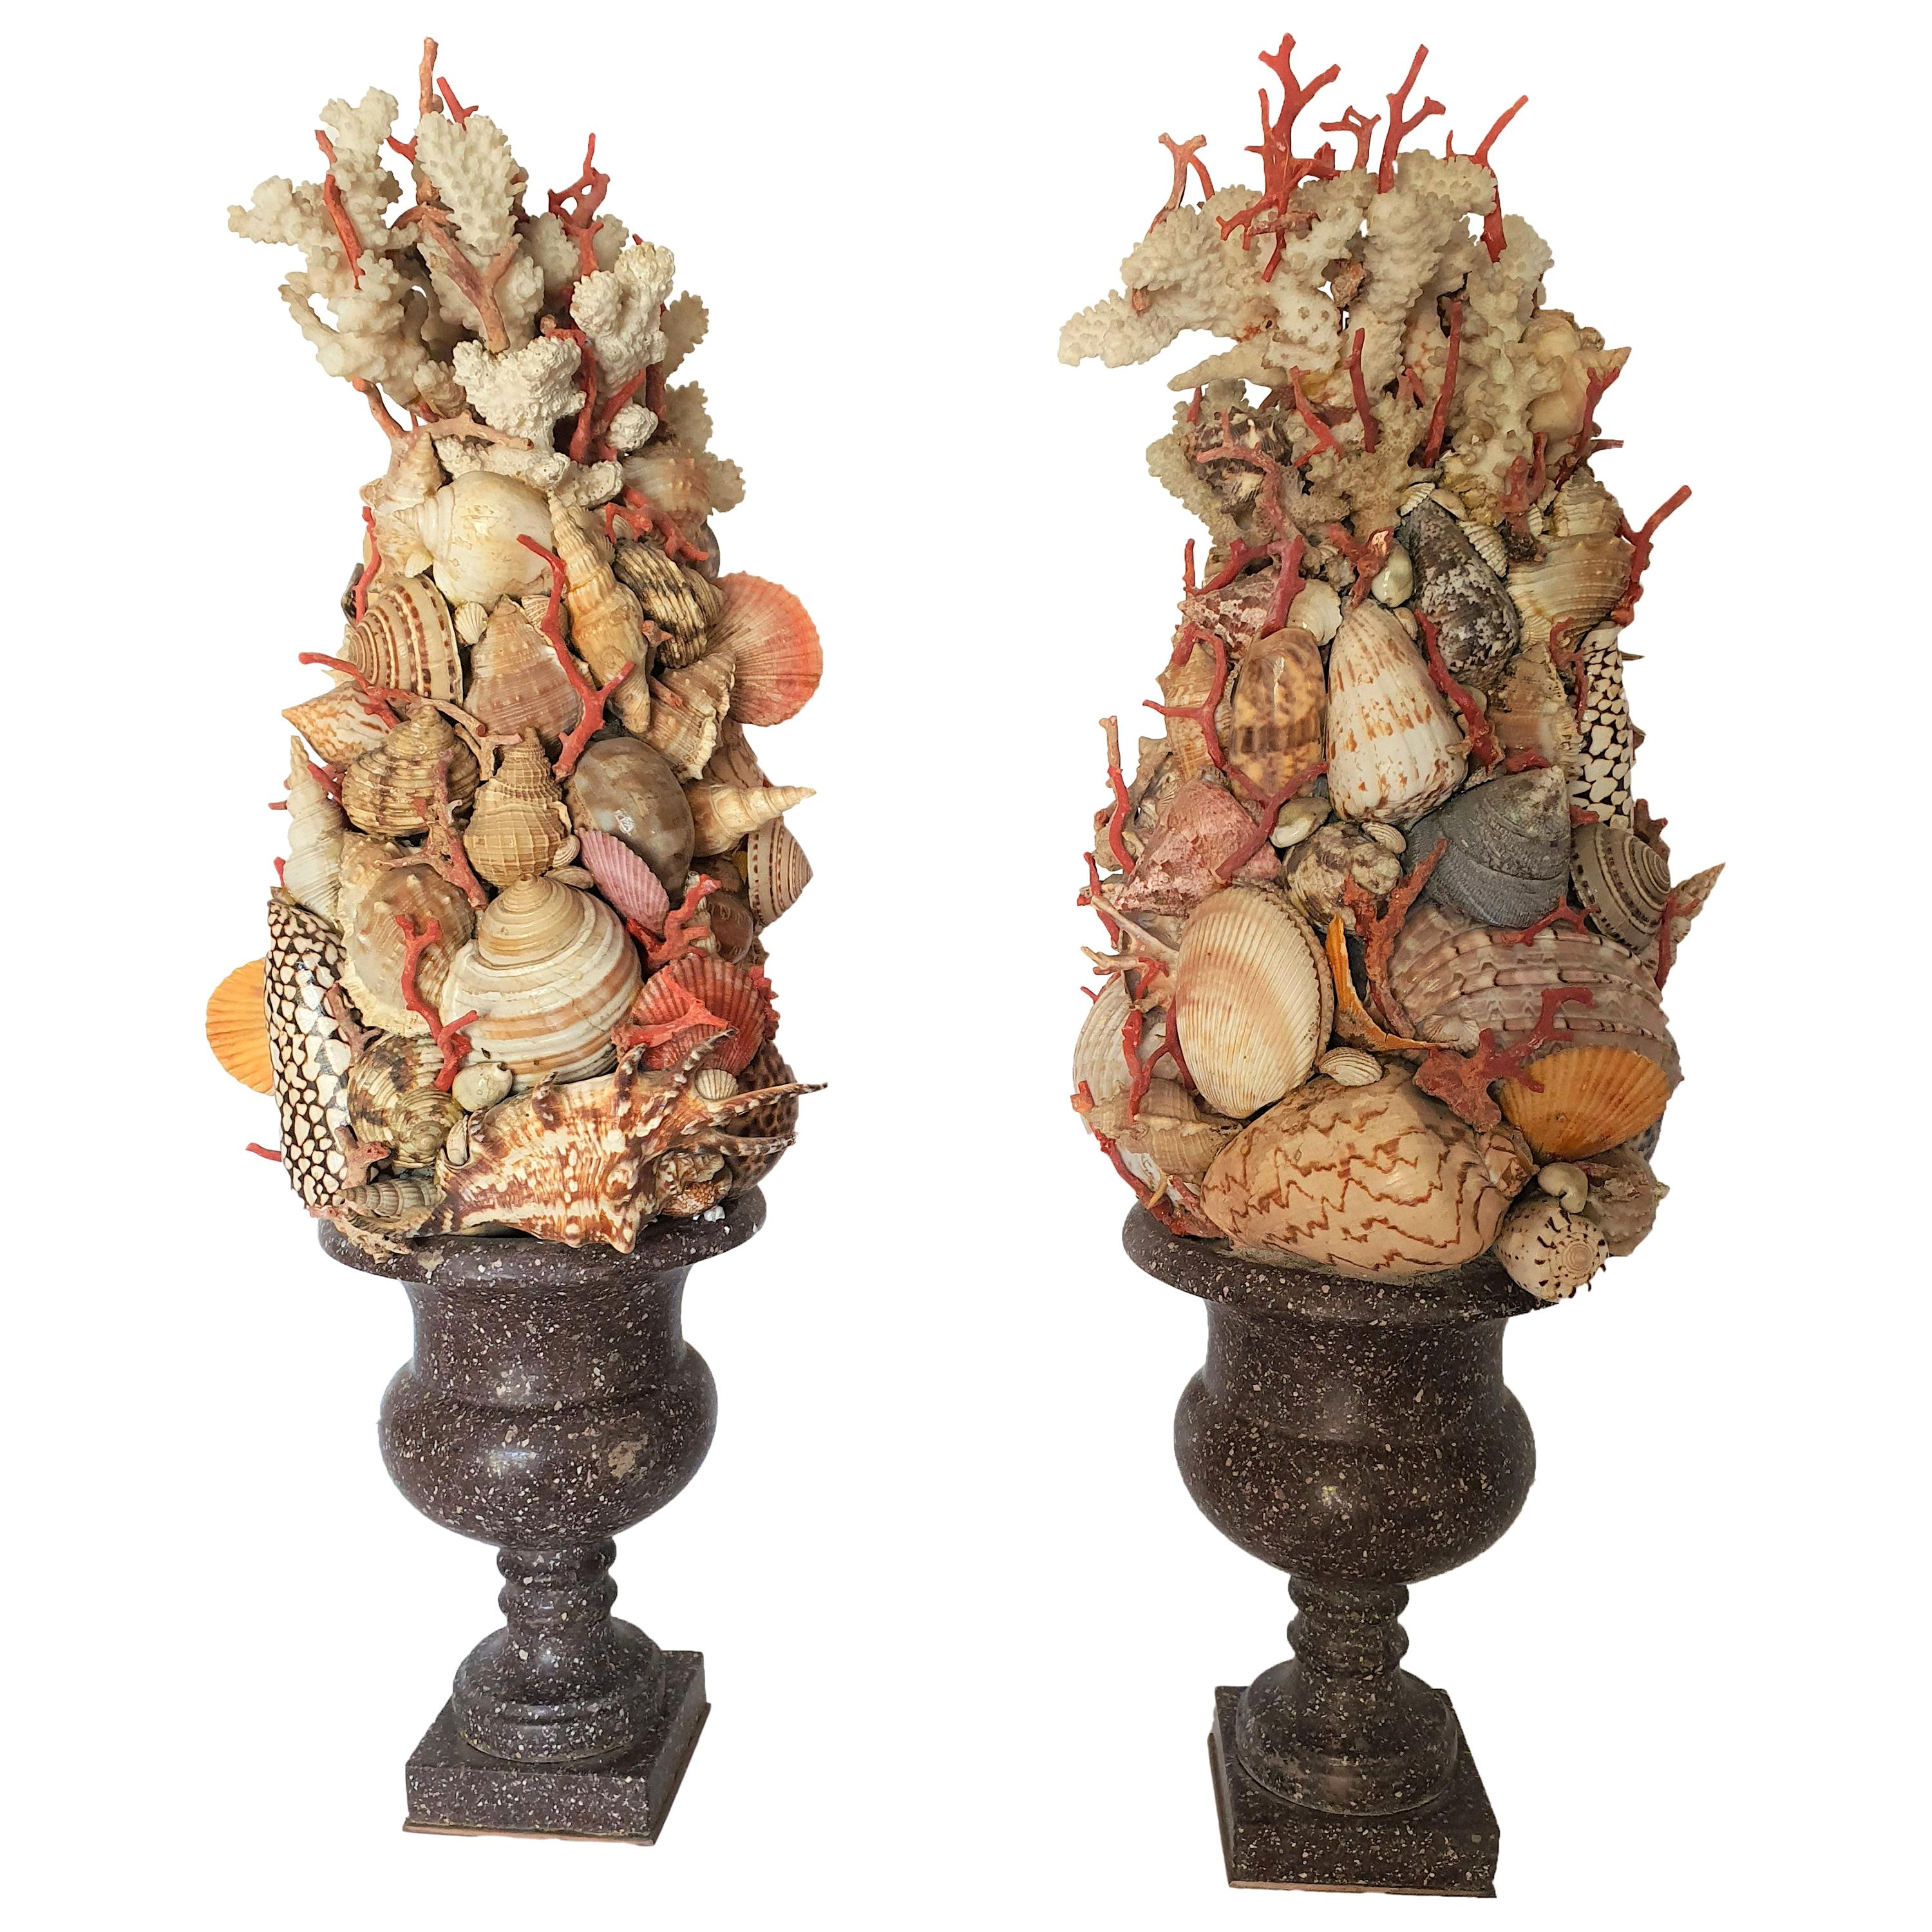 19th Century Pair of Egyptian Porphyry Vases with Shells and Coral from Trapani